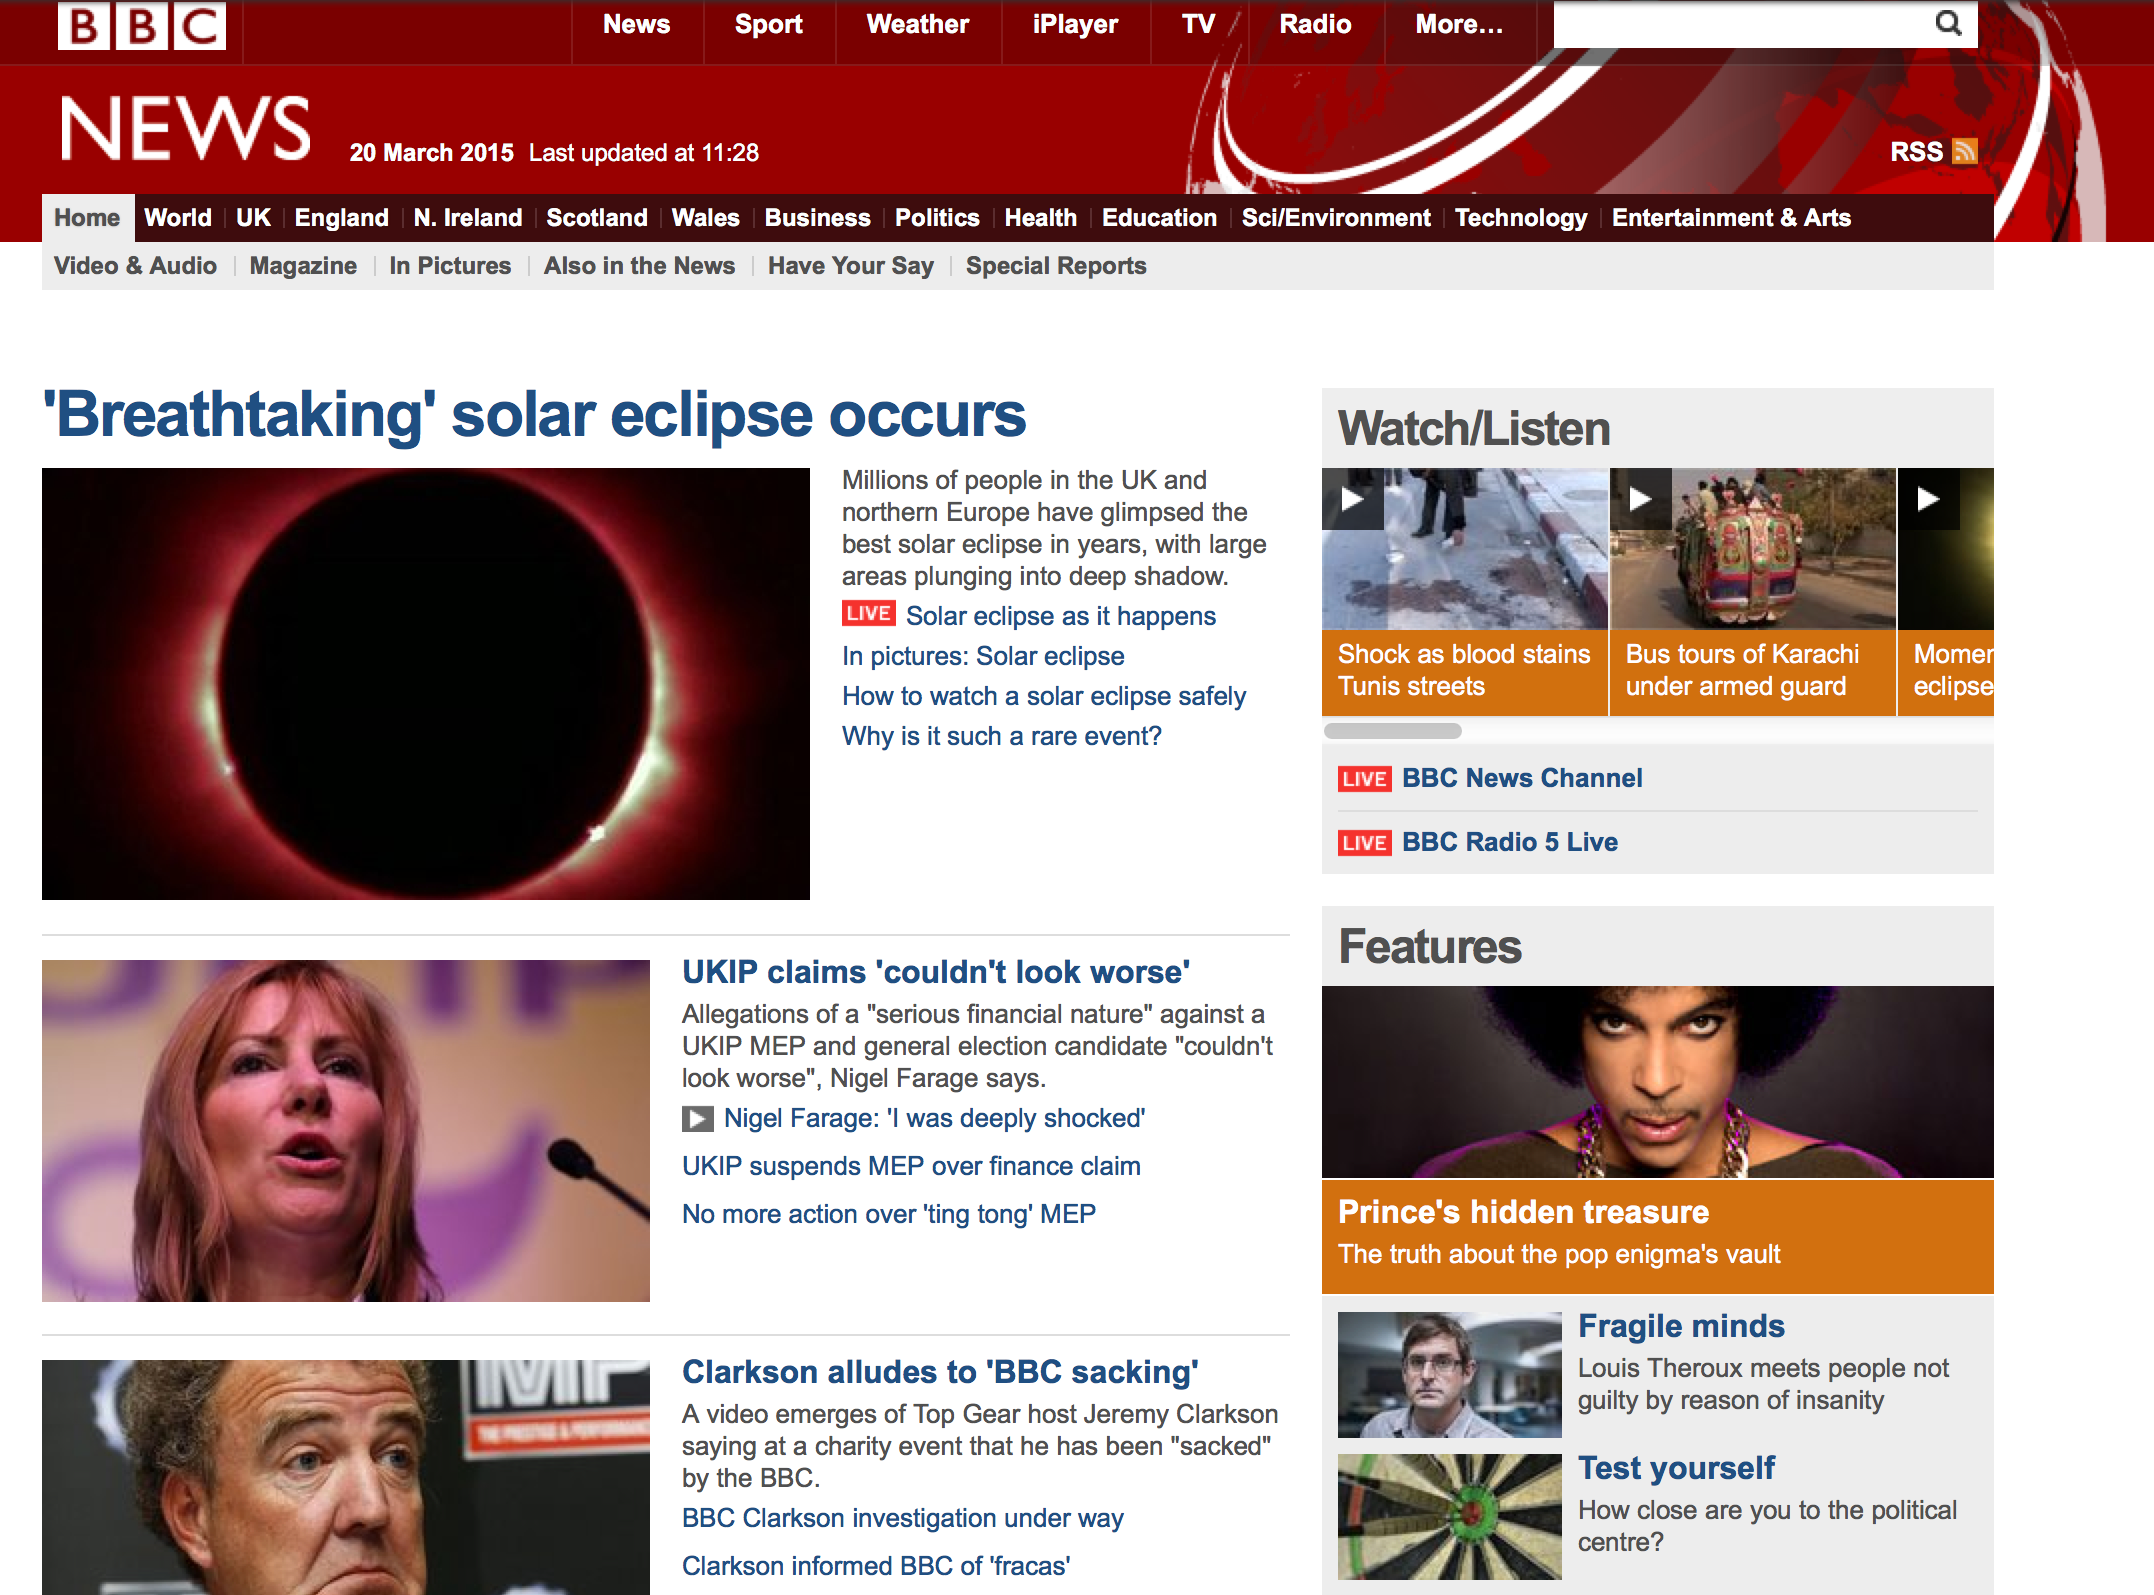 BBC News on 20th March 2015